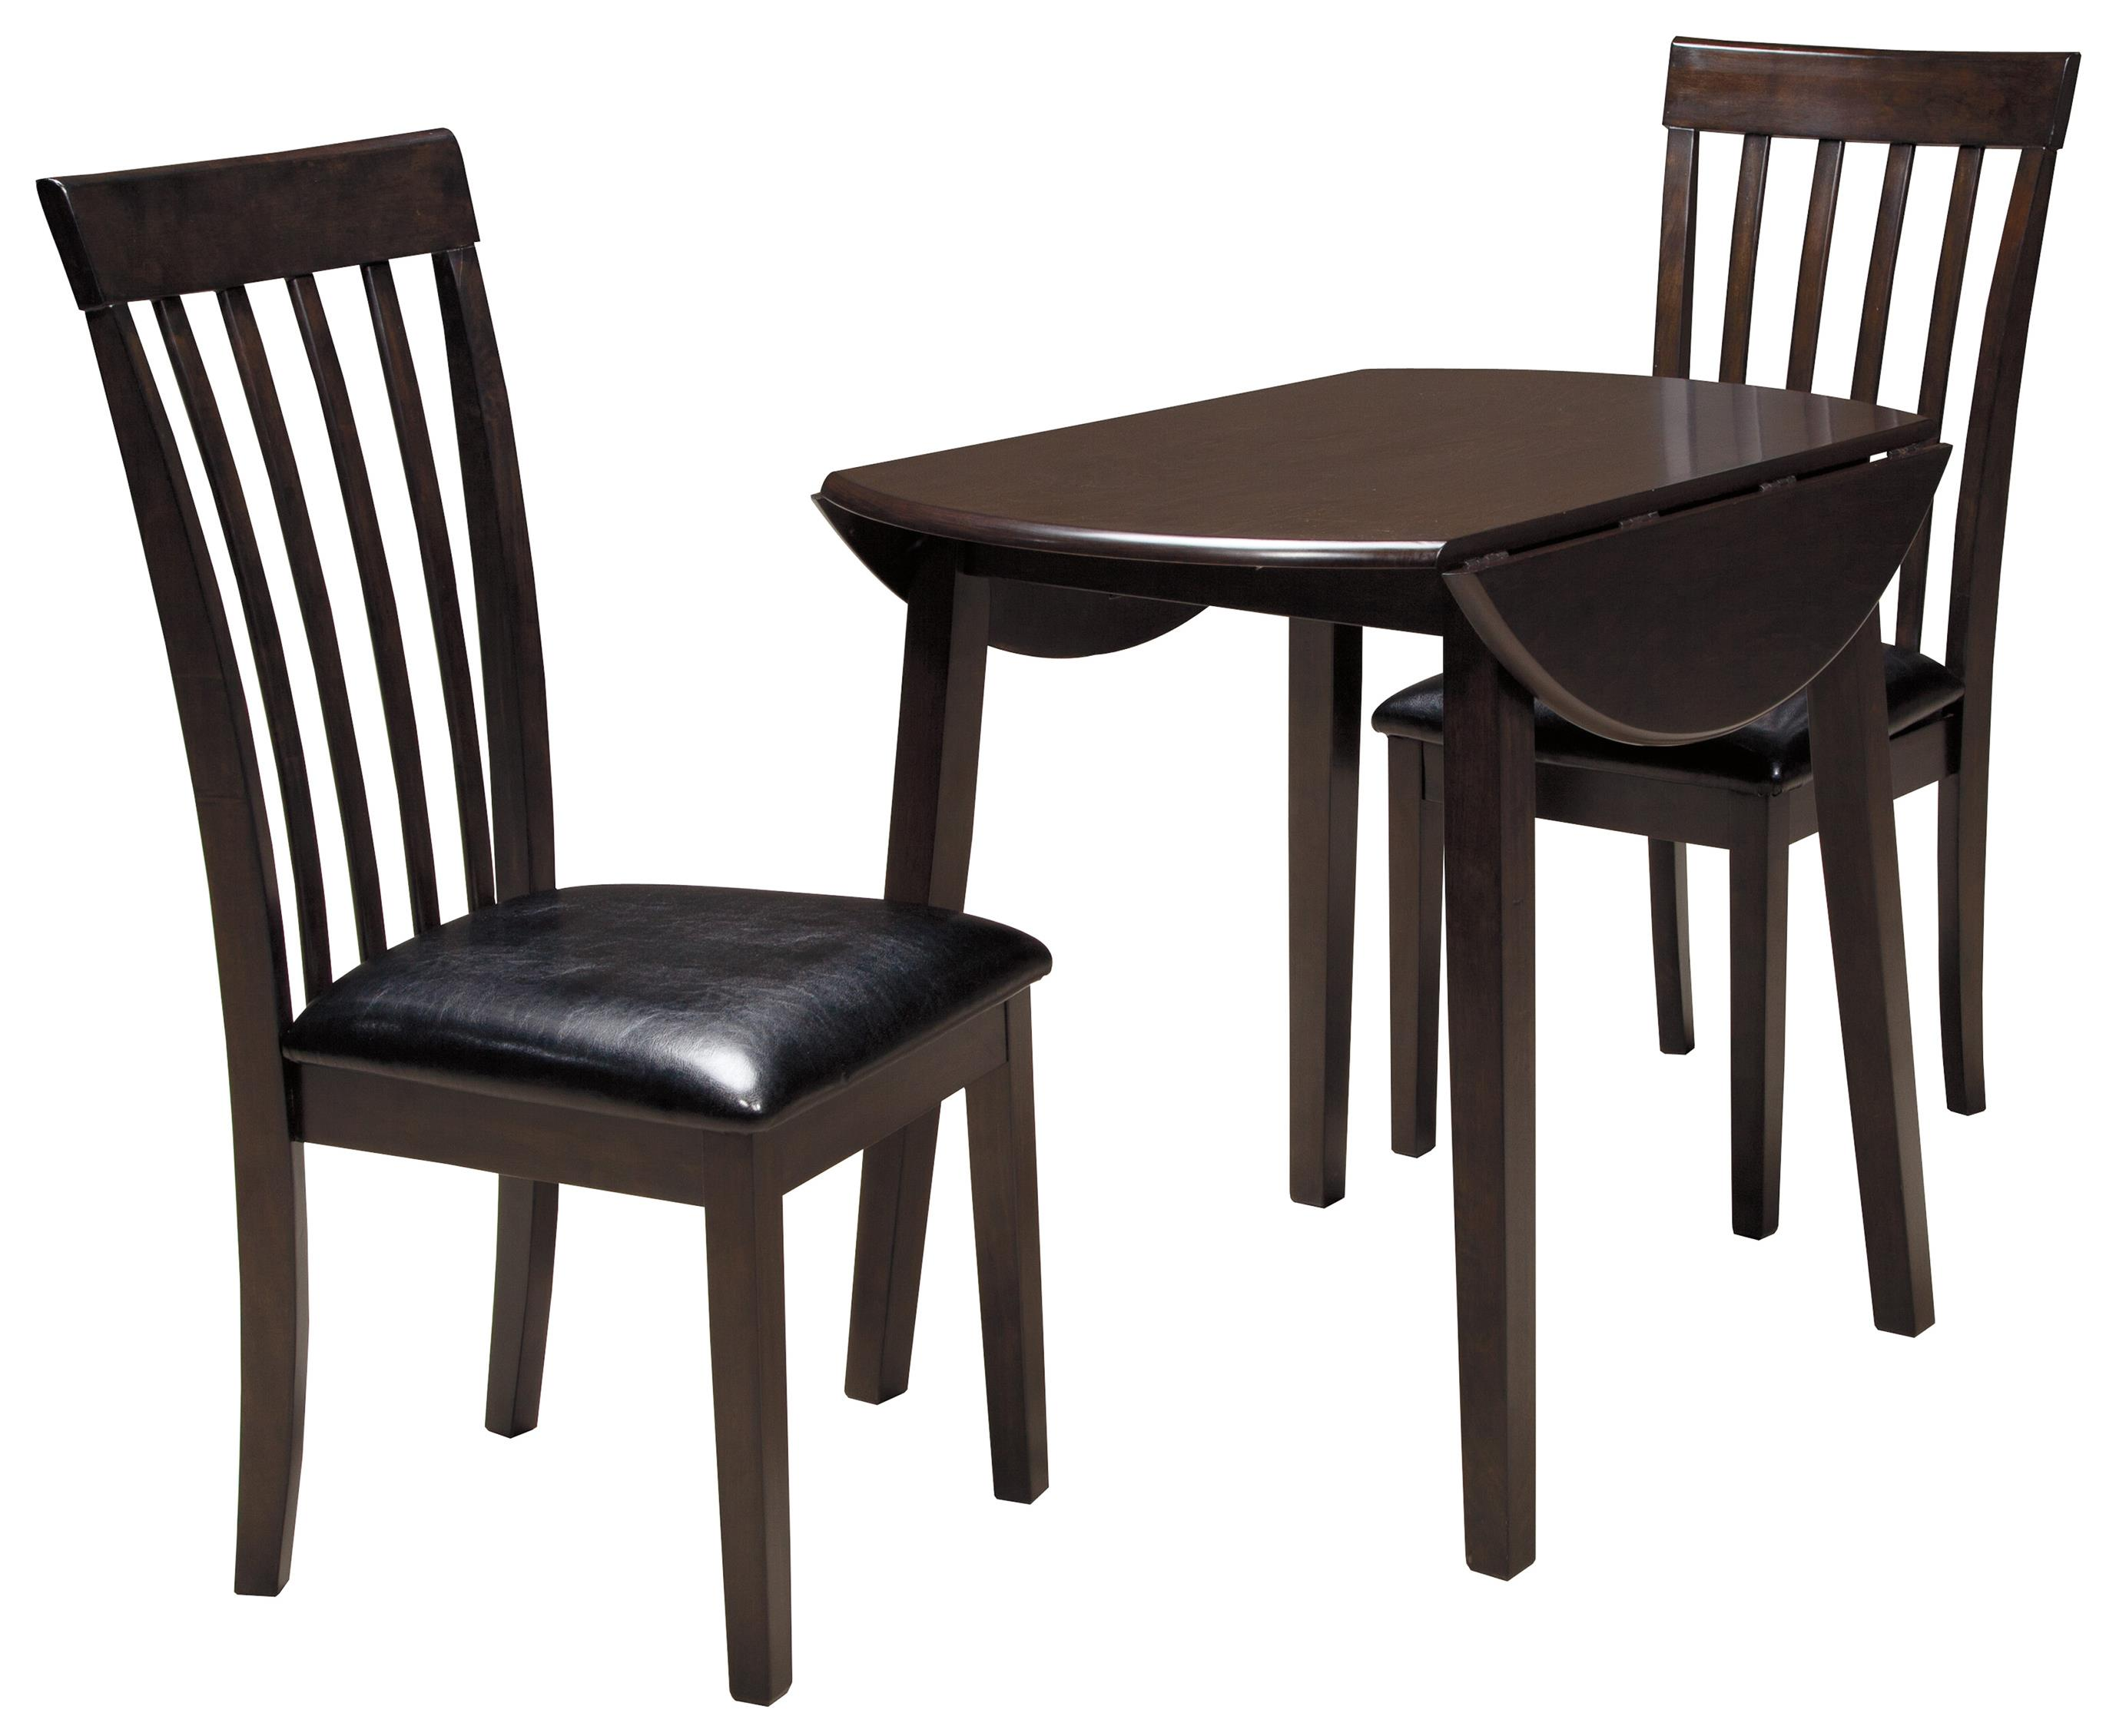 Signature Design by Ashley Hammis 3-Piece Round Drop Leaf Table Set - Item Number: D310-15+2x01